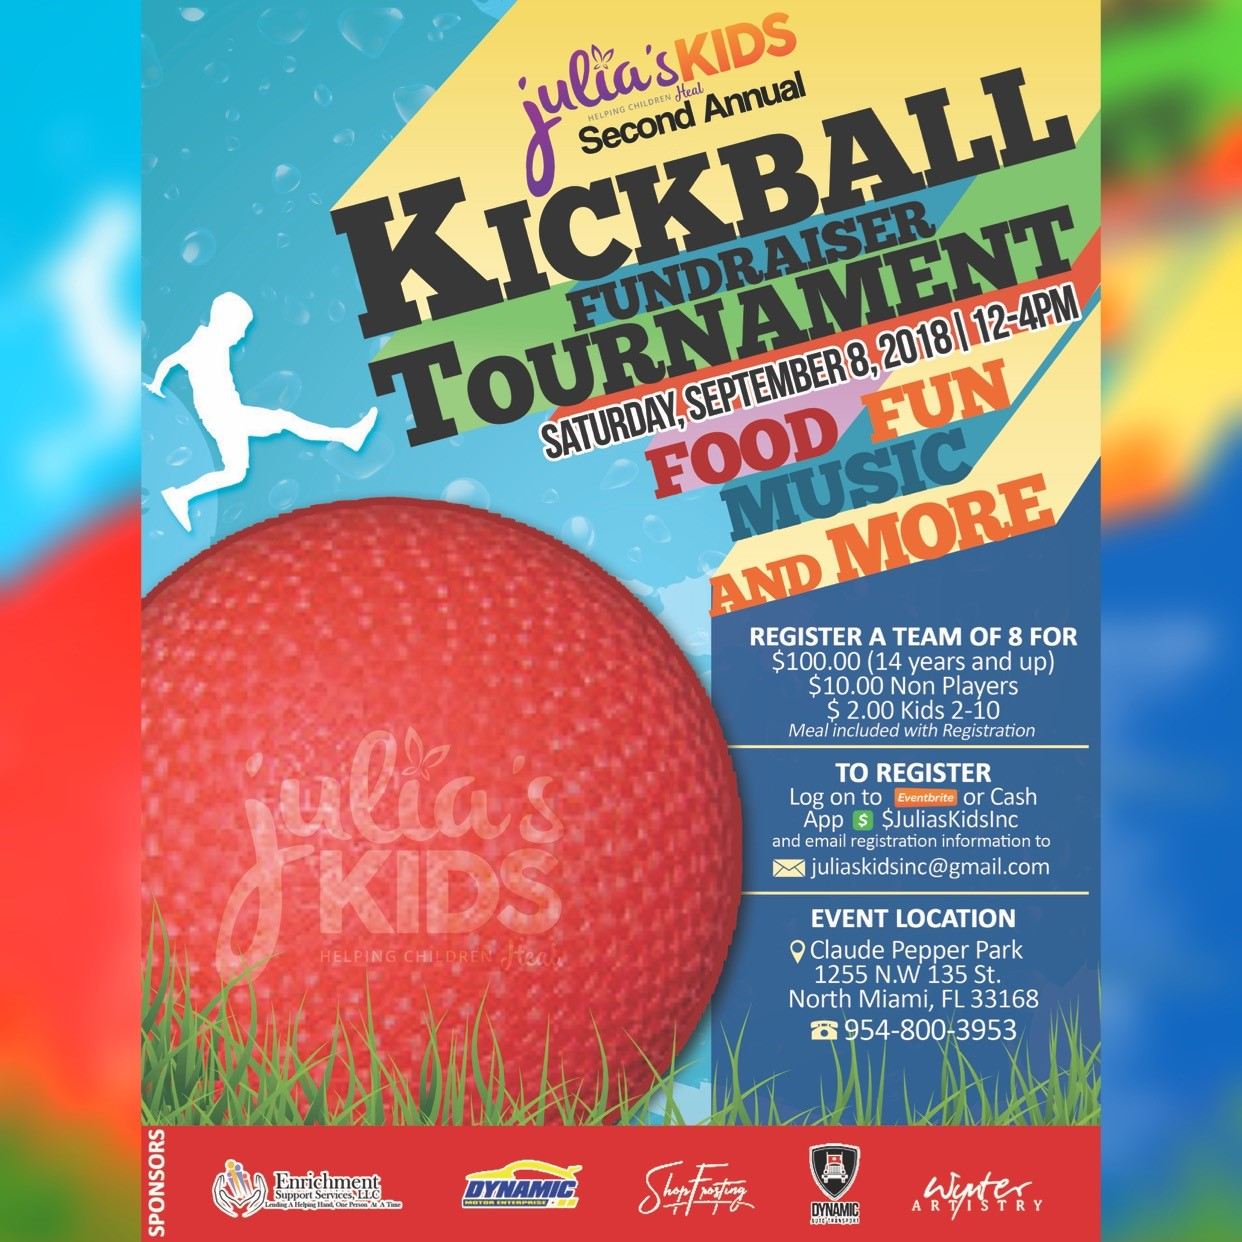 Julia's Kids 2nd Annual Kickball Fundraiser Tournament